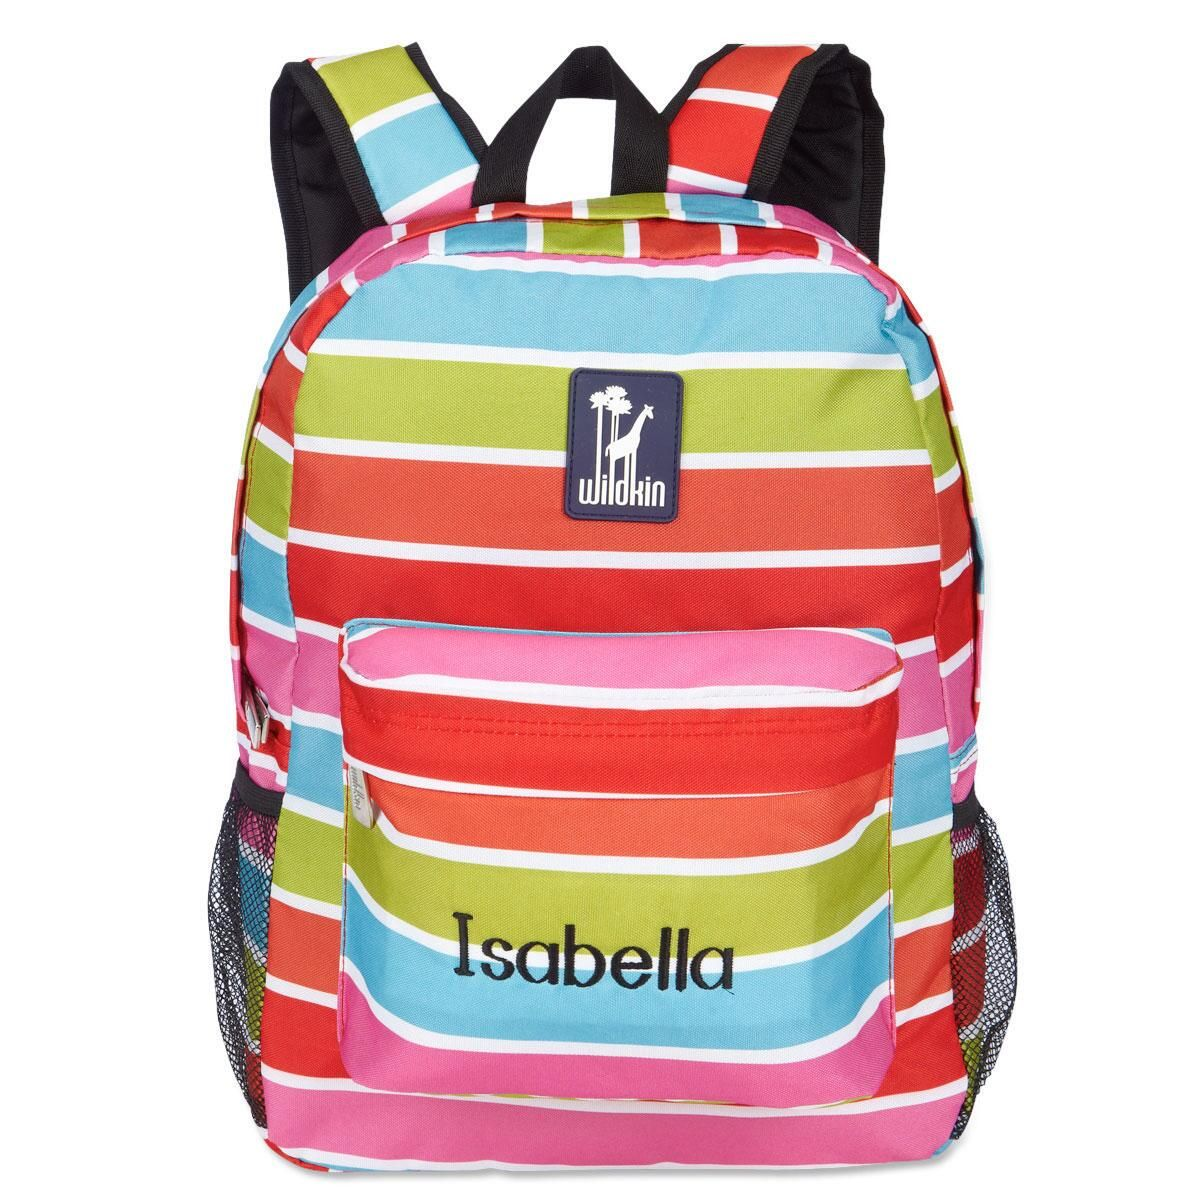 Bright Stripes Personalized Backpack